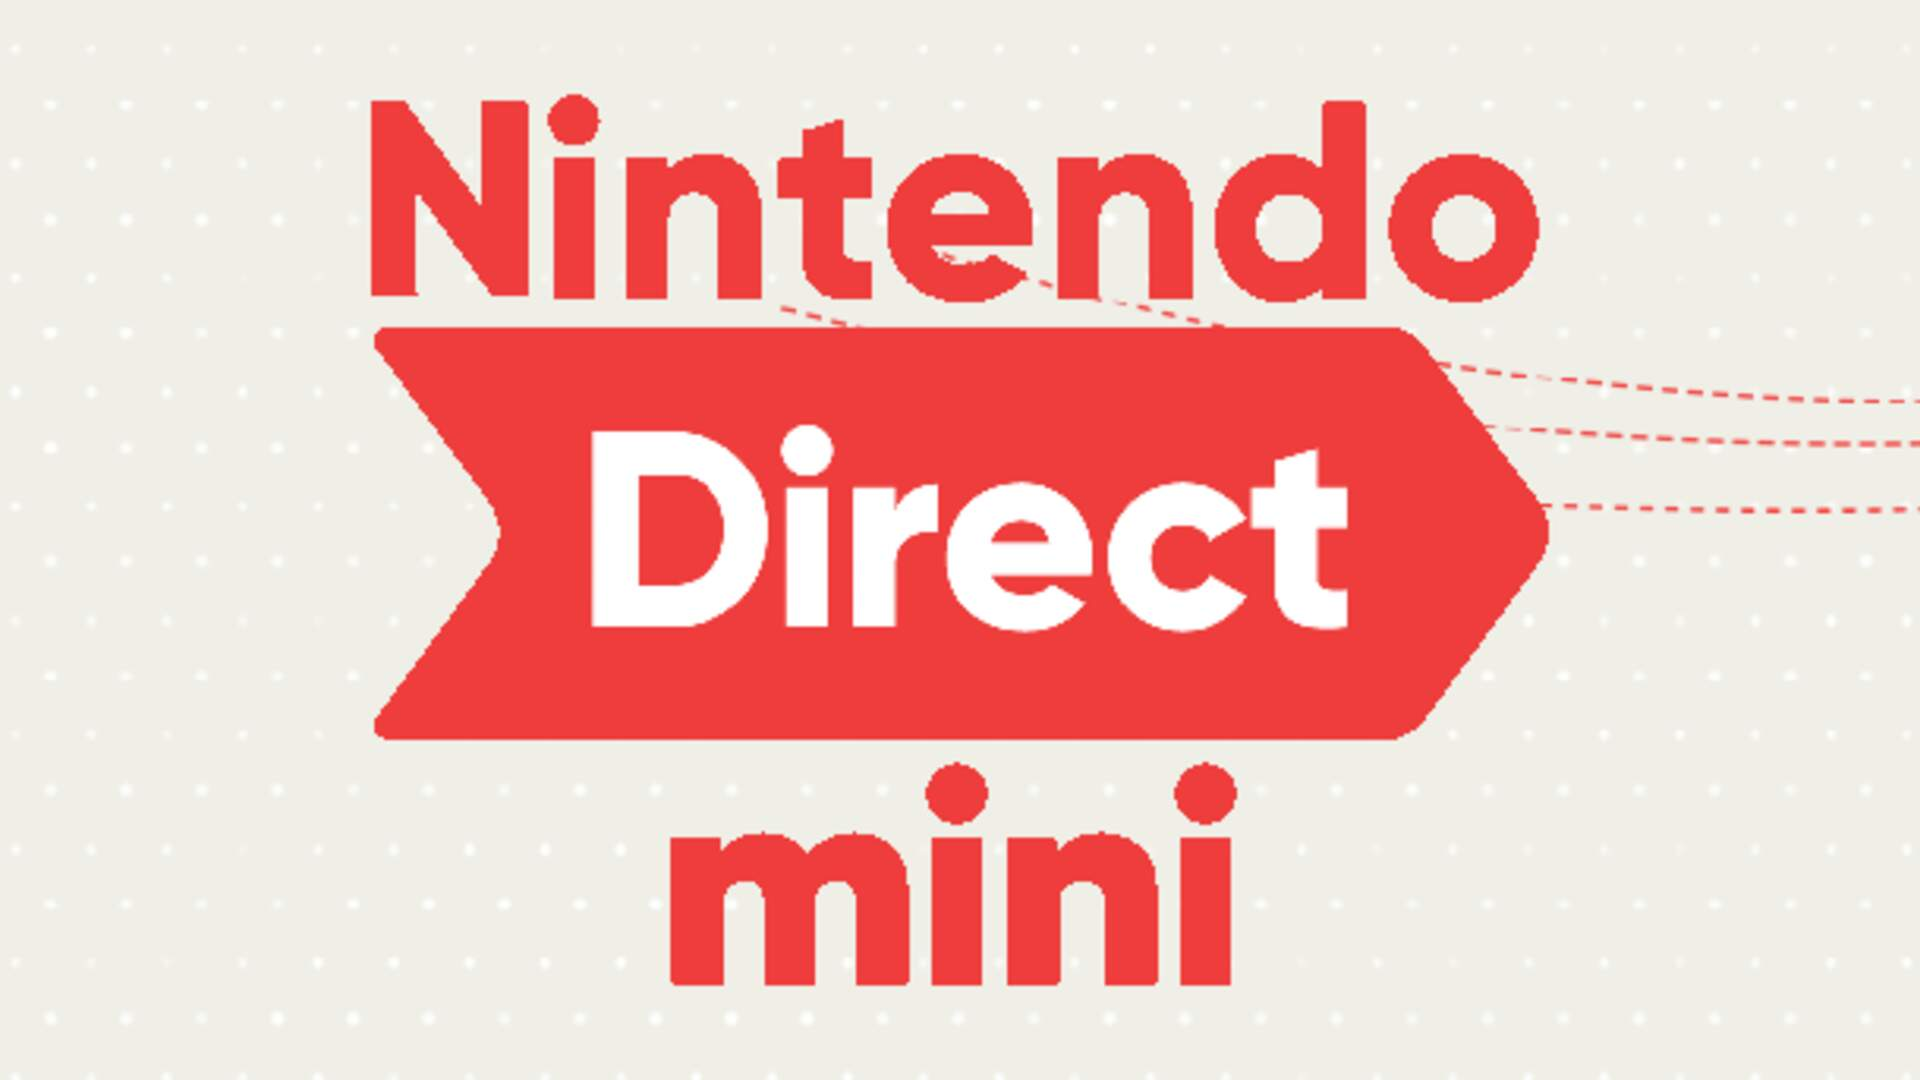 Nintendo Direct Mini 2018 Recap: Kirby, Donkey Kong, and Mario Tennis All Coming To Switch